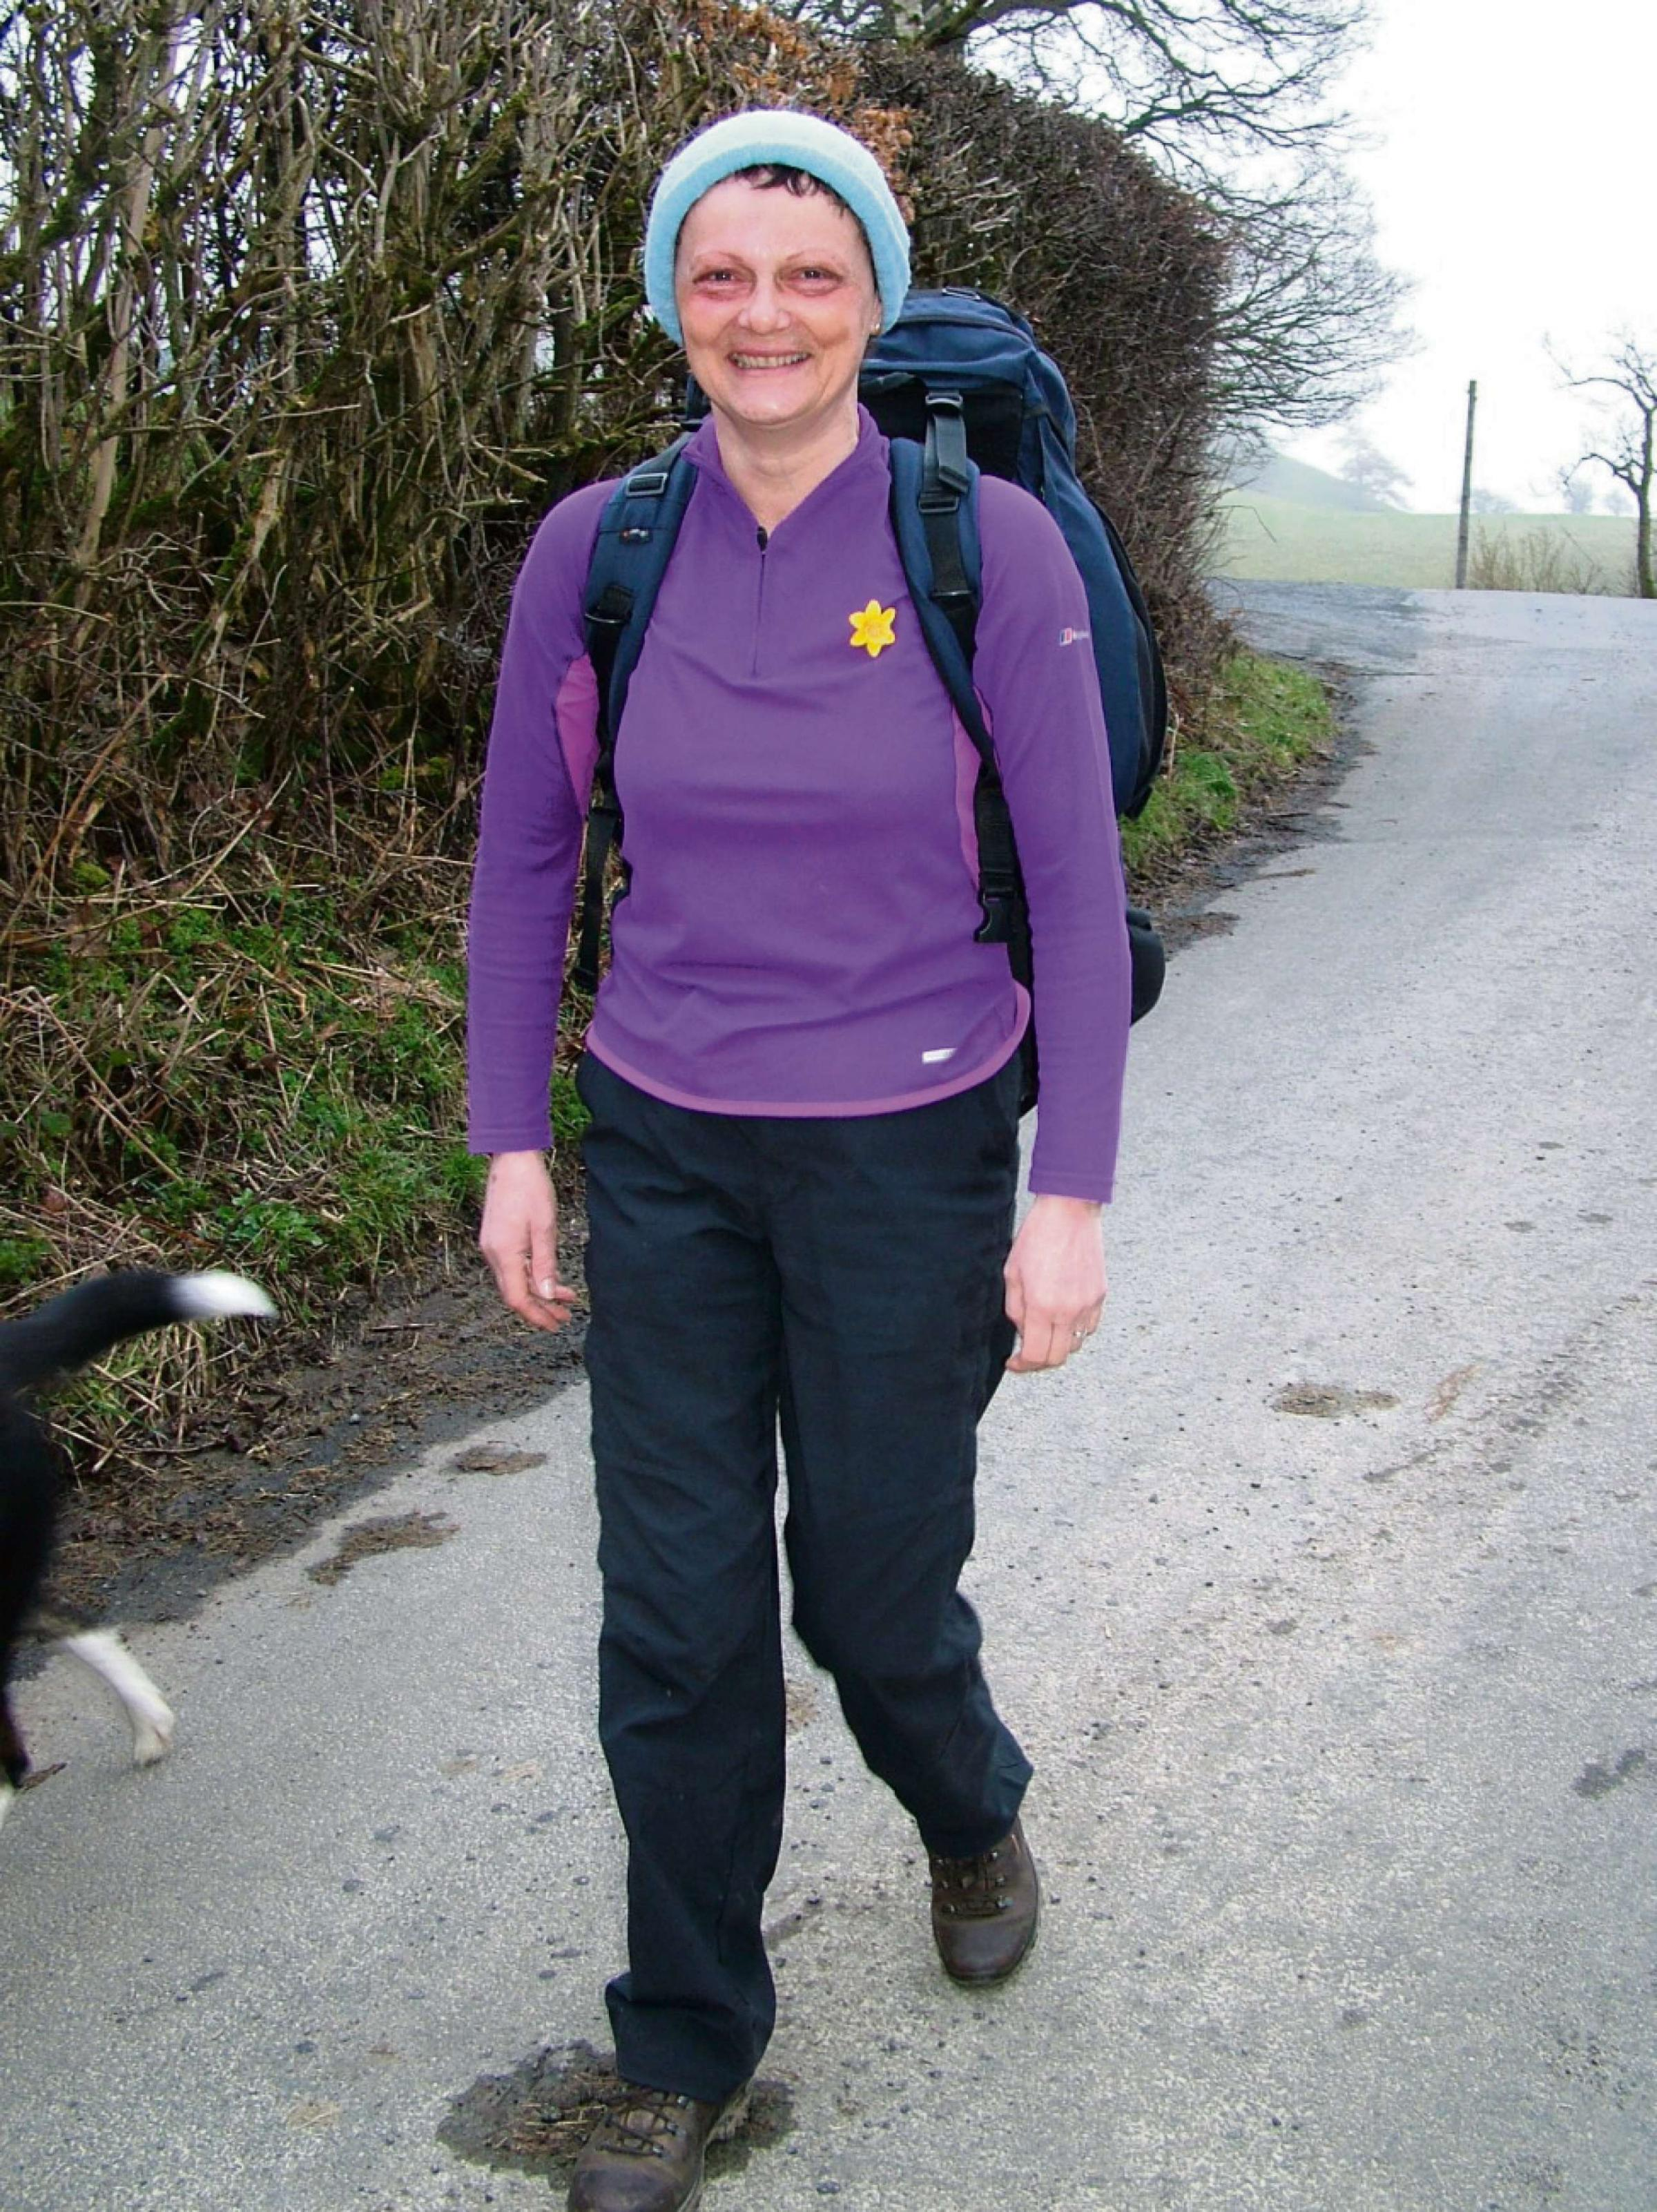 Rebecca Morris at the start of her long fundraising walk.